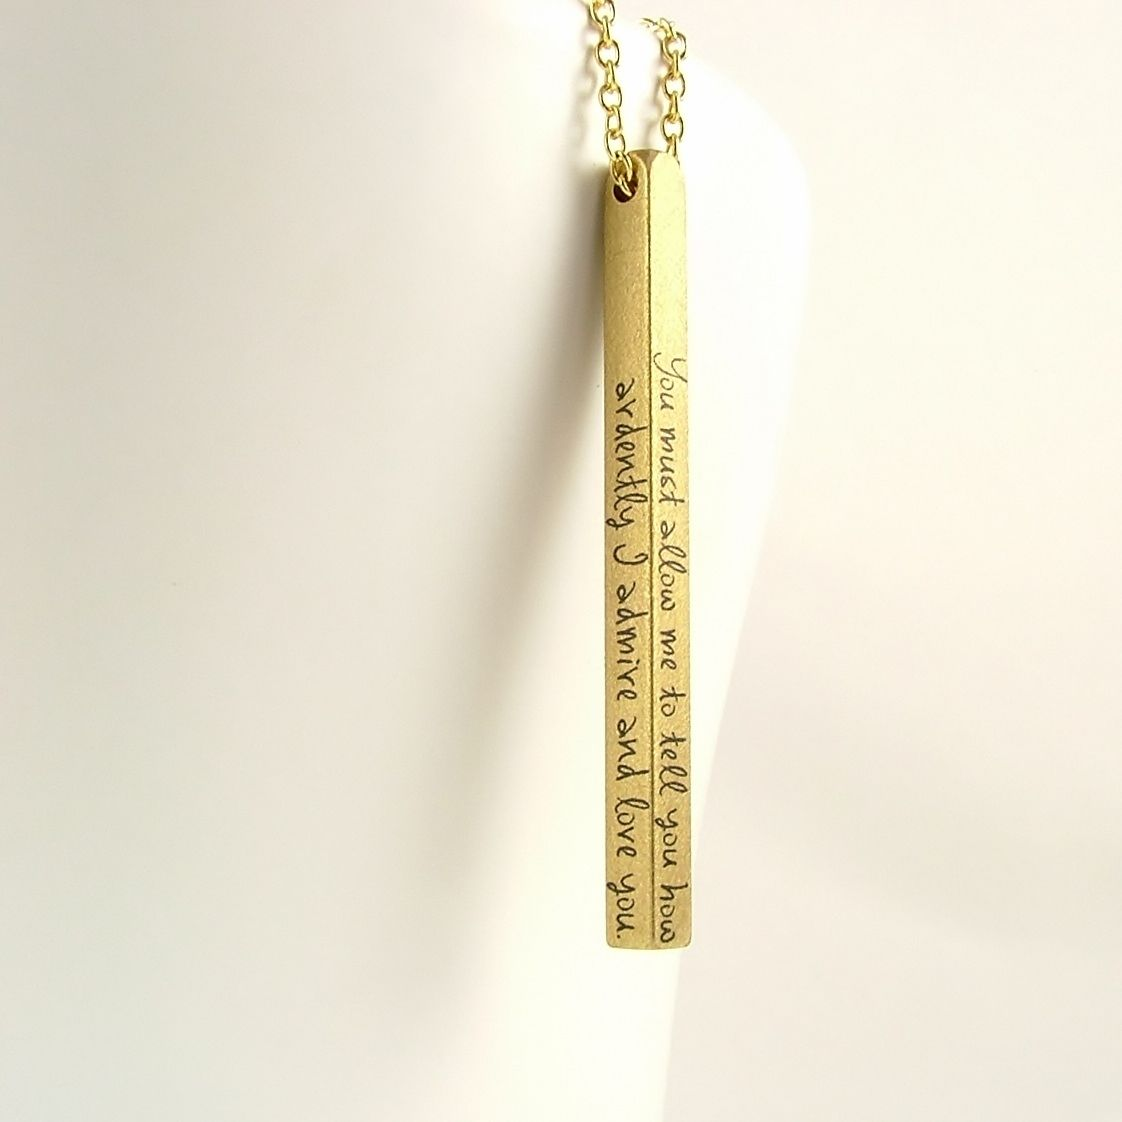 Mr Darcy Proposal Quote Bar Necklace - product images  of